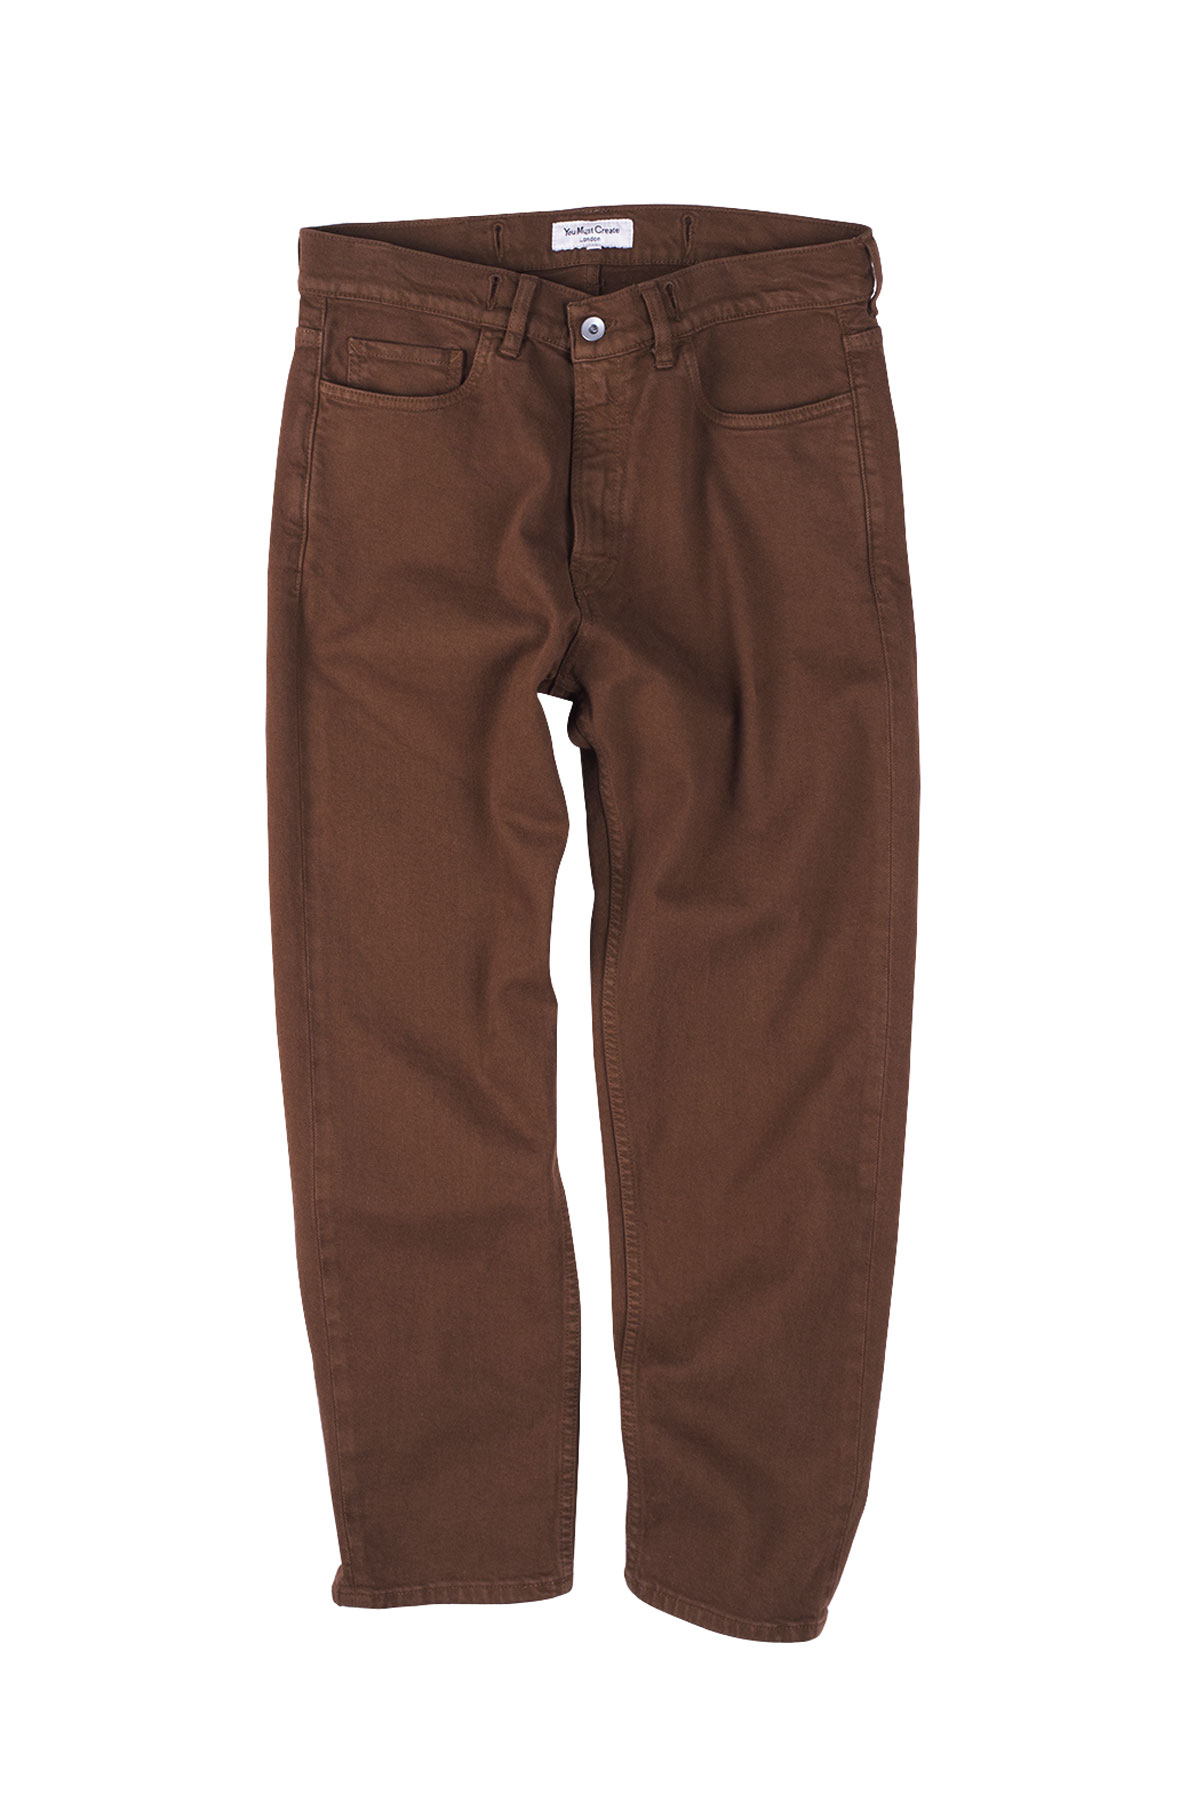 YMC : Tearaway Jean (Brown)